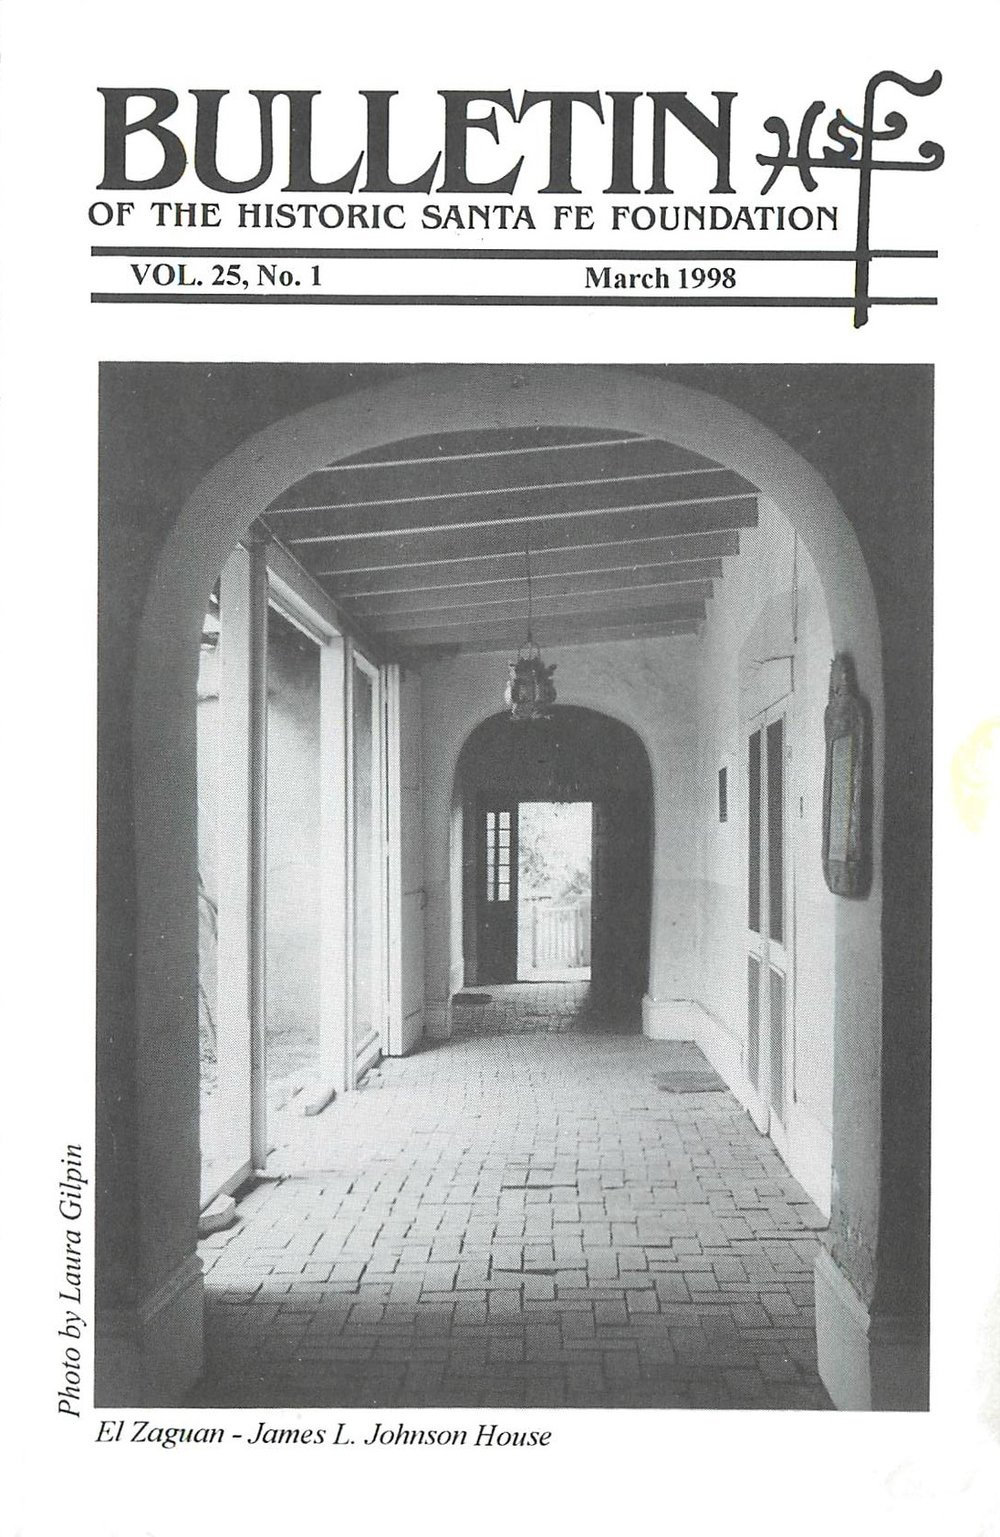 1998 HSFF Bulletin Vol.25 No.1 Cover